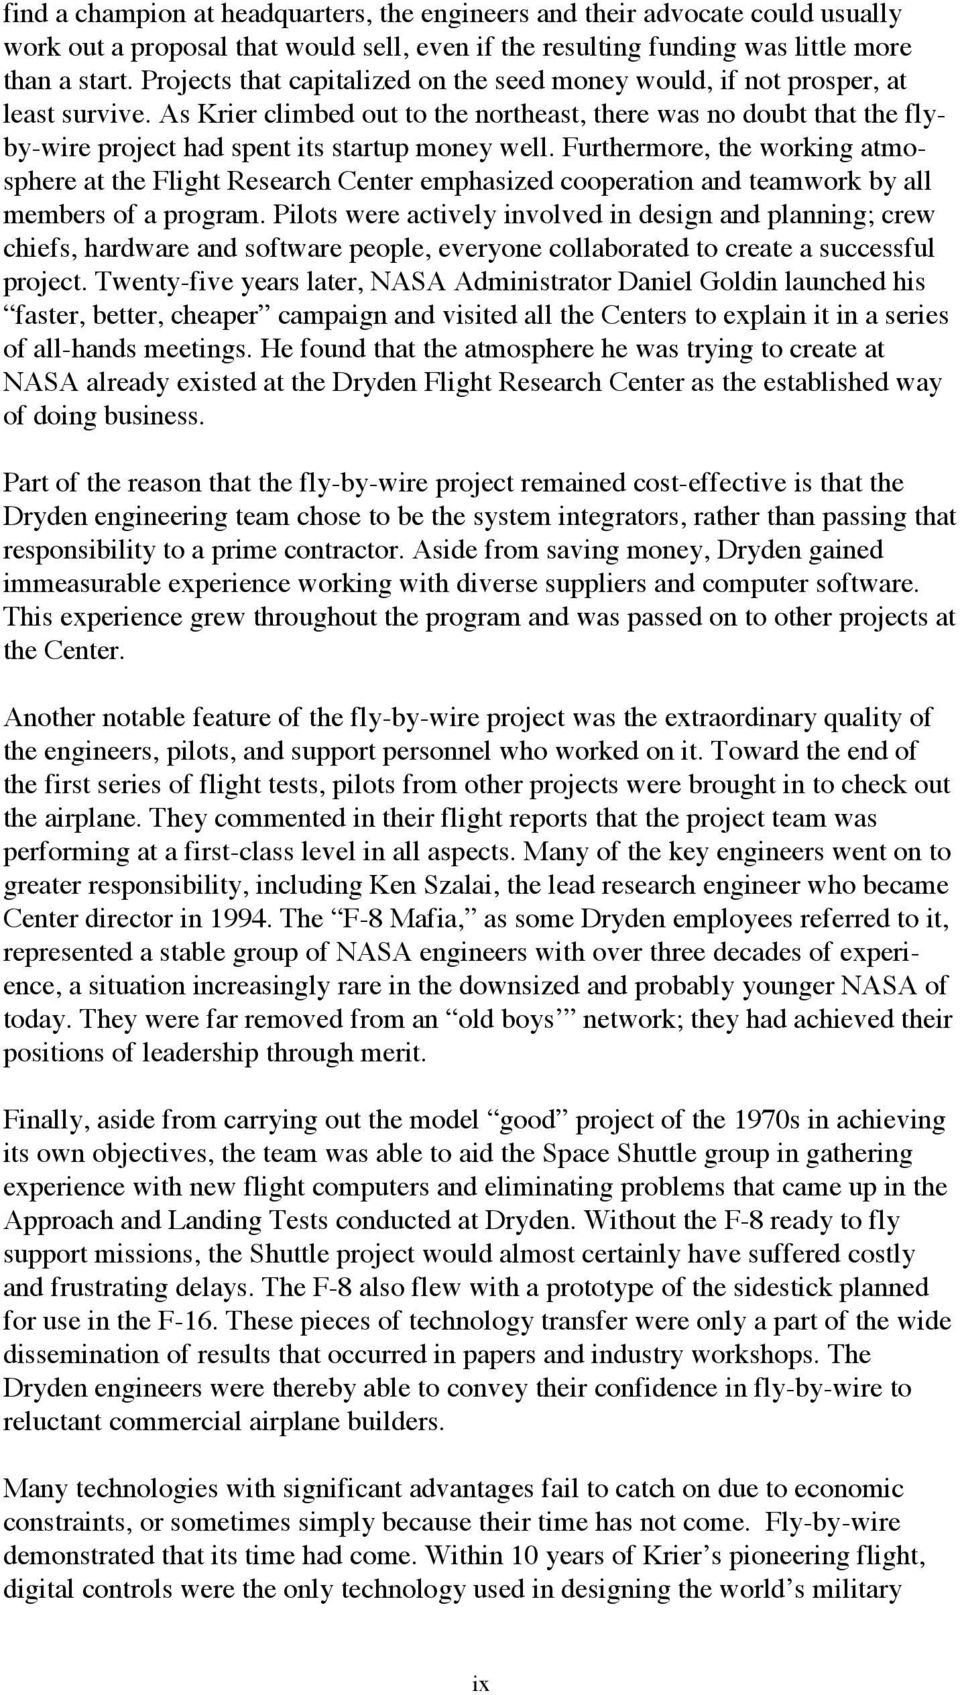 As Krier climbed out to the northeast, there was no doubt that the flyby-wire project had spent its startup money well.